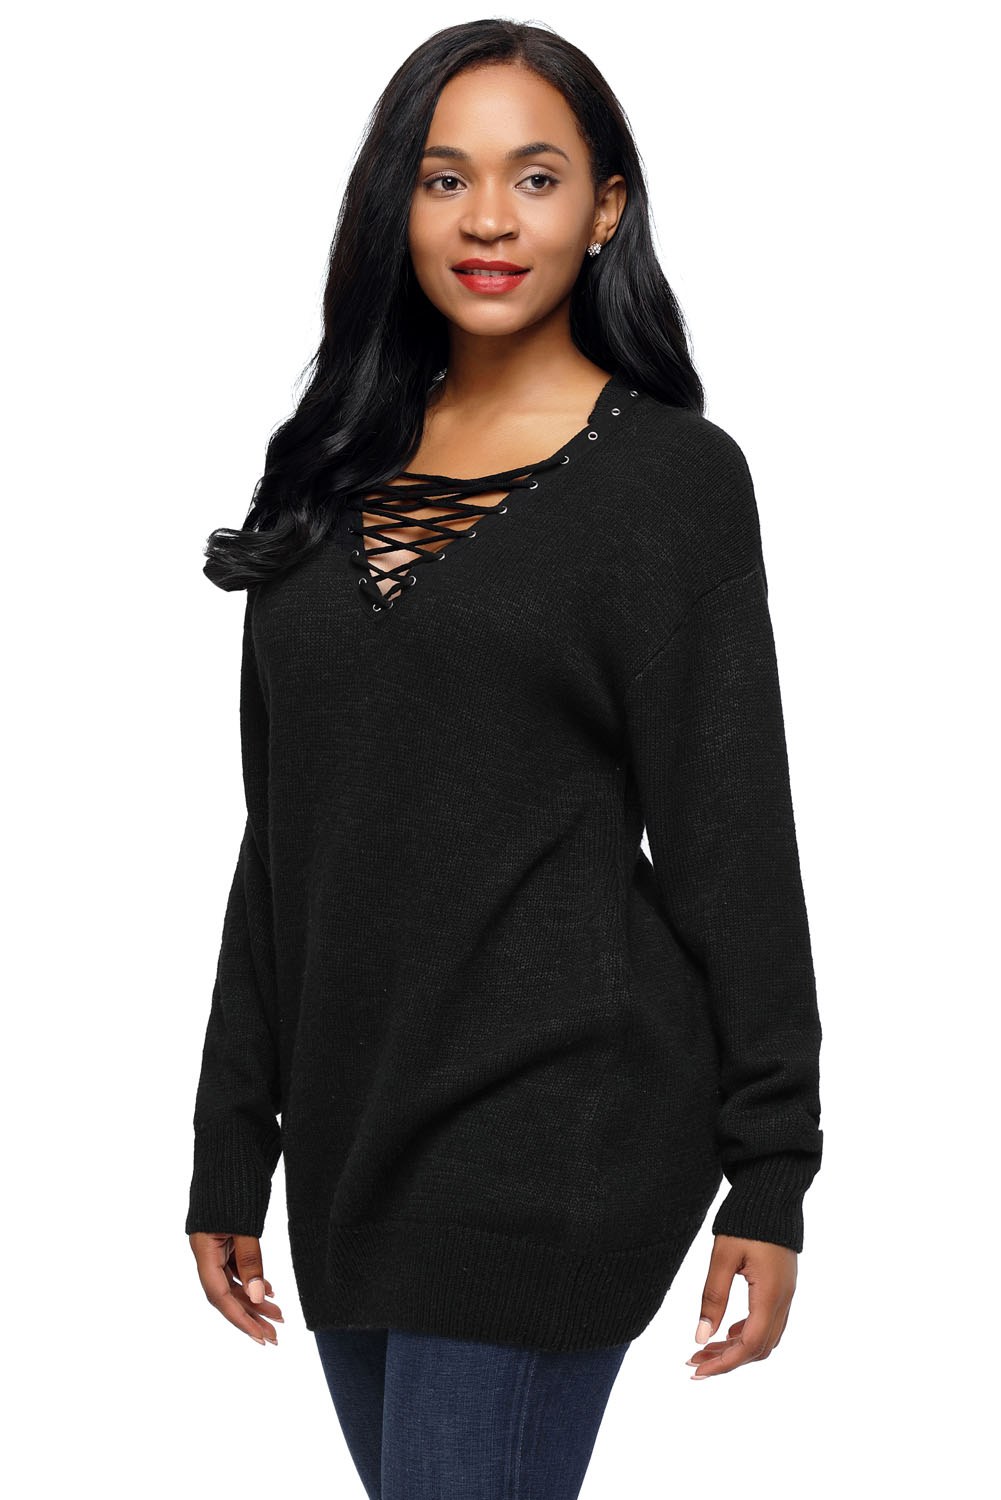 chic long sleeve sweater with lace up neckline womens jumper ... 31b577fc1